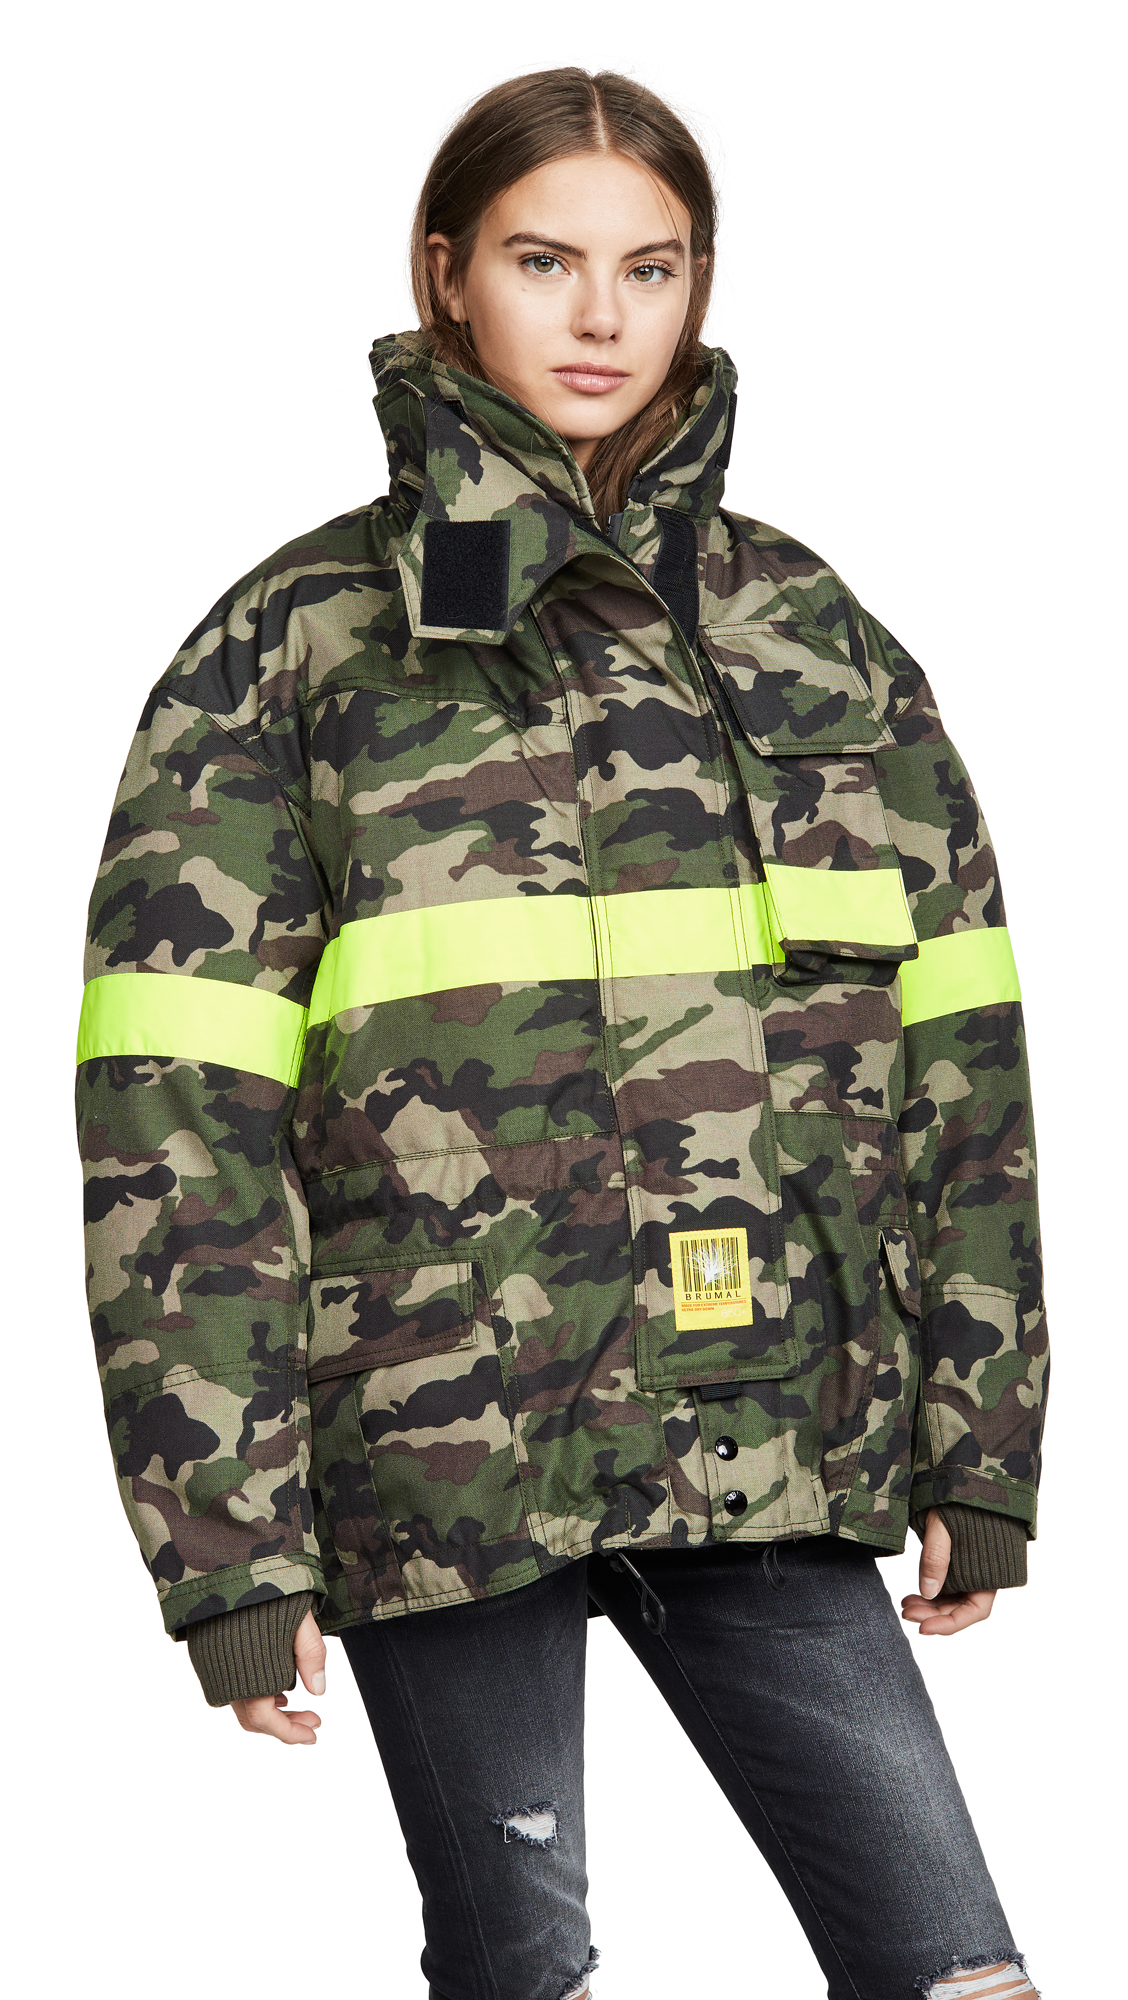 Buy BRUMAL Fireman Down Jacket with Reflective Tape online beautiful BRUMAL Jackets, Coats, Down Jackets